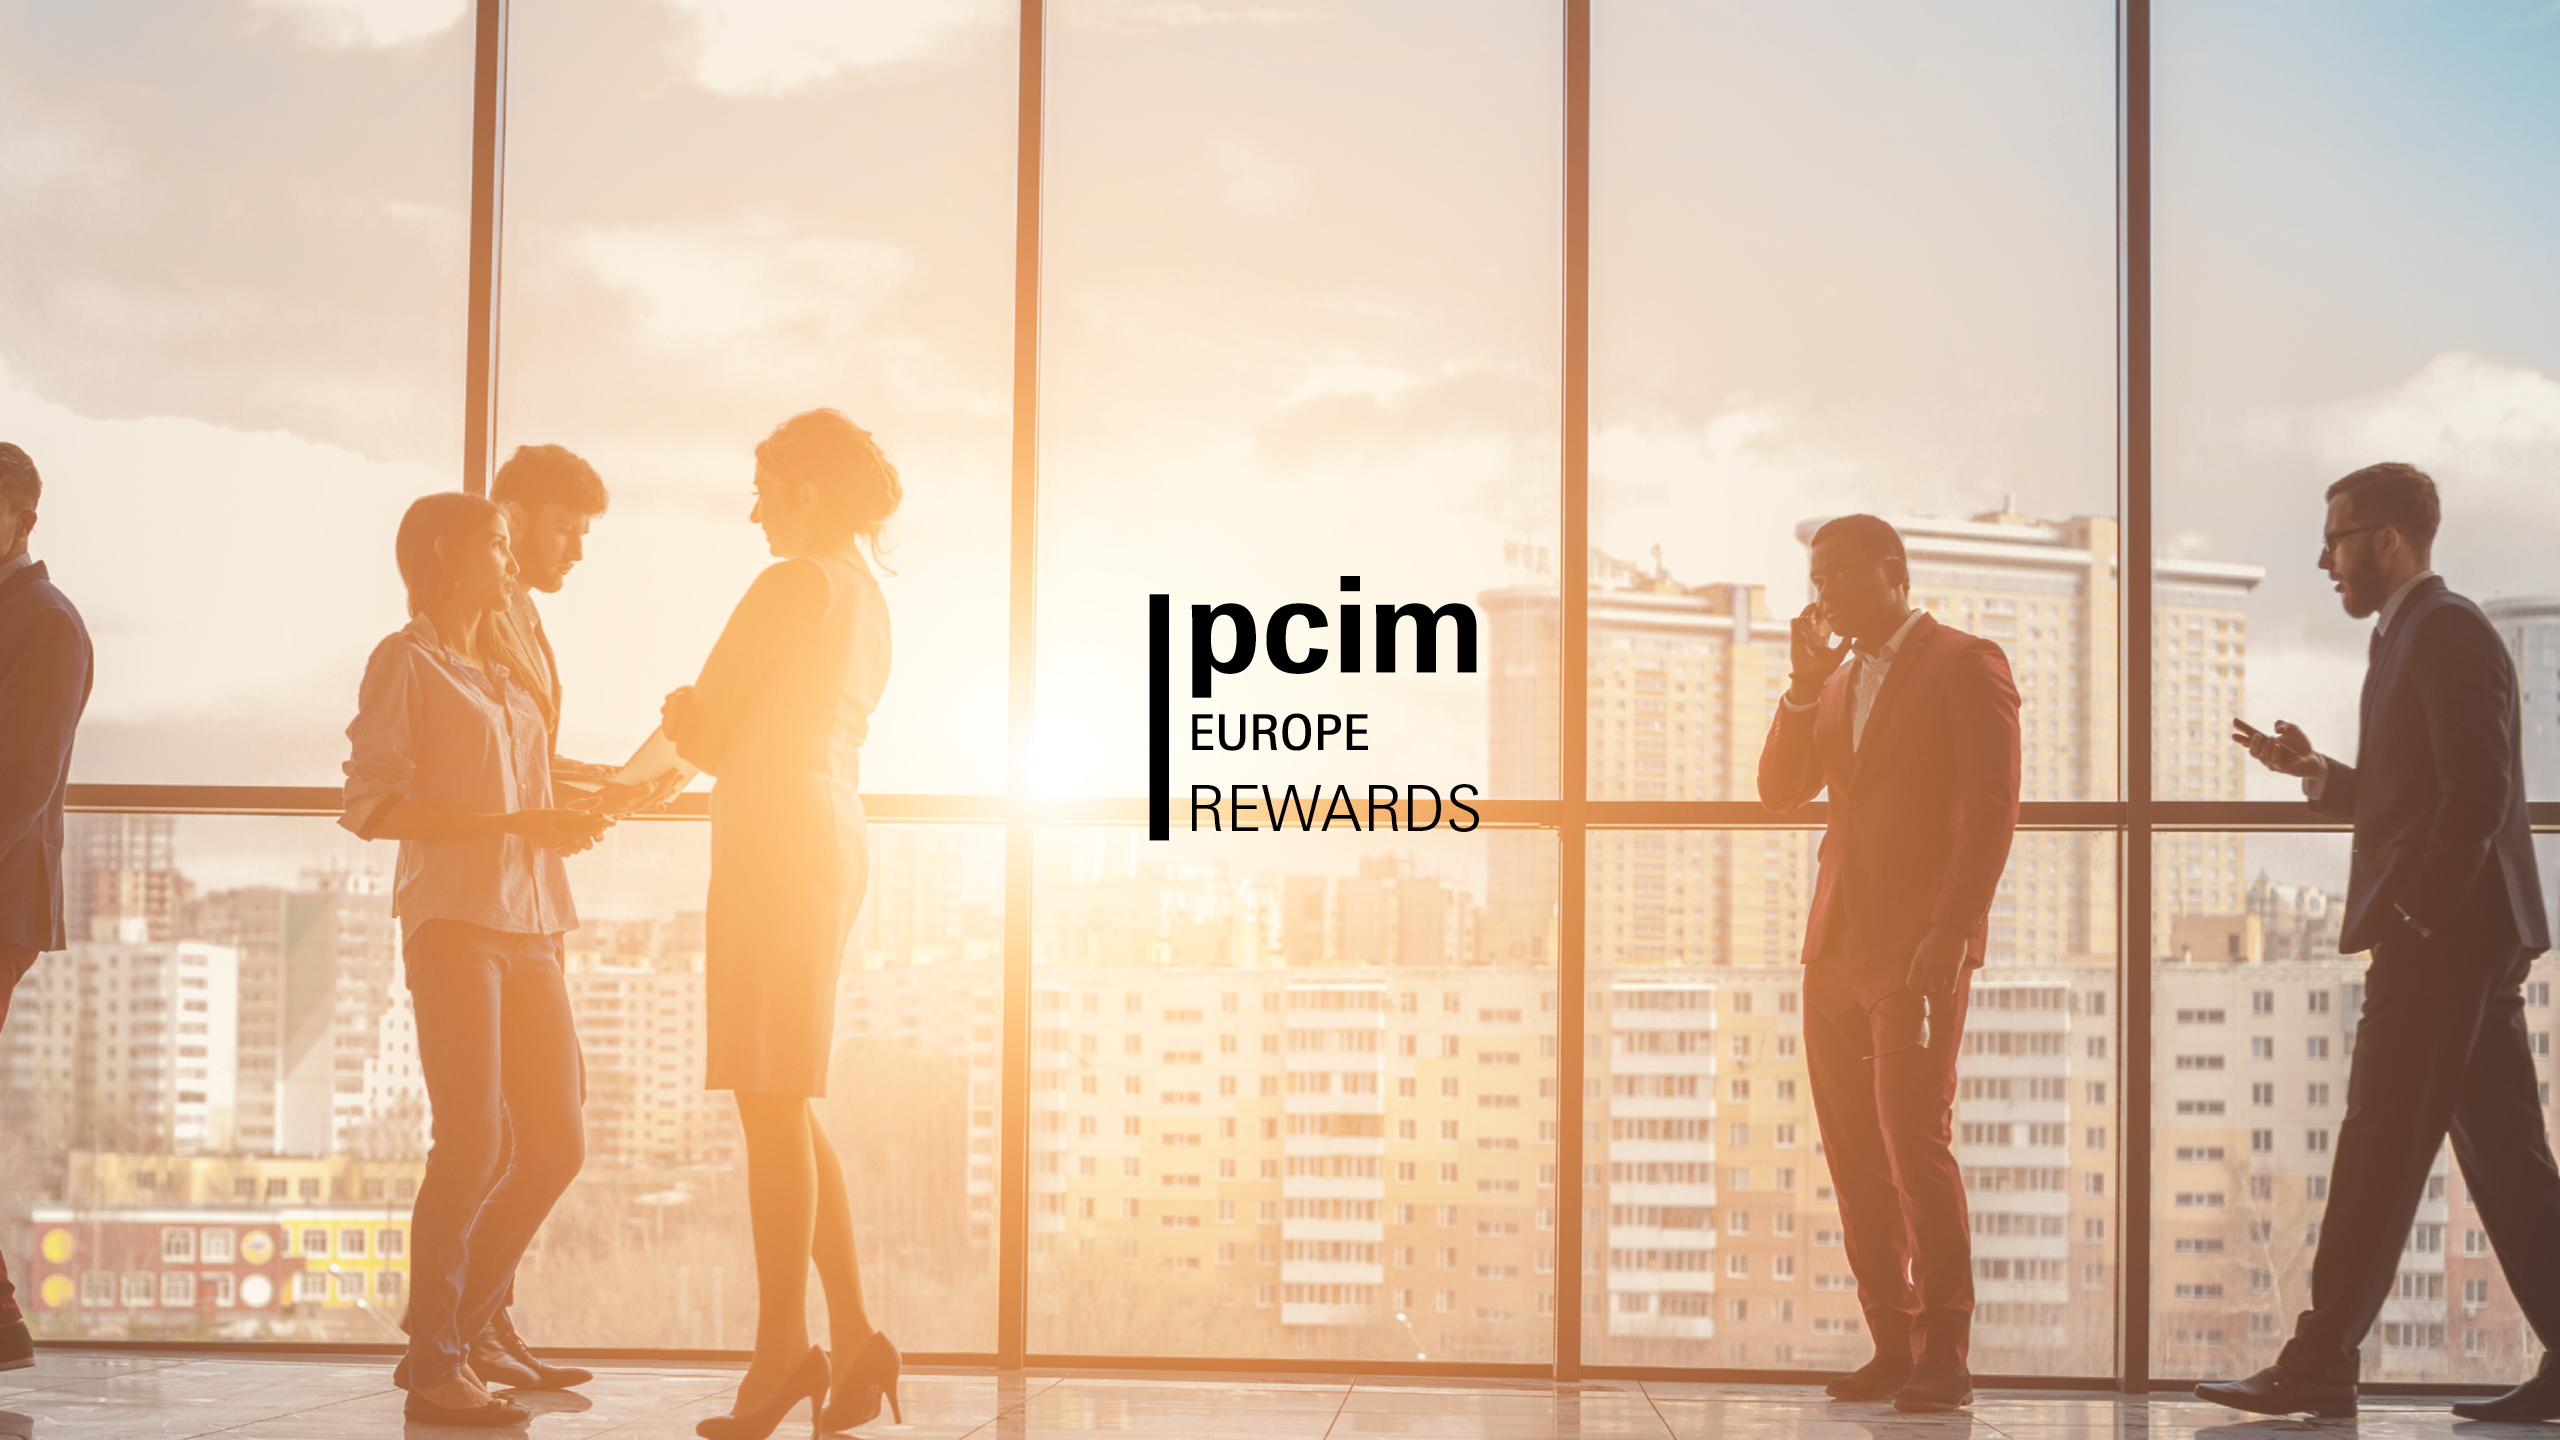 PCIM Europe Rewards